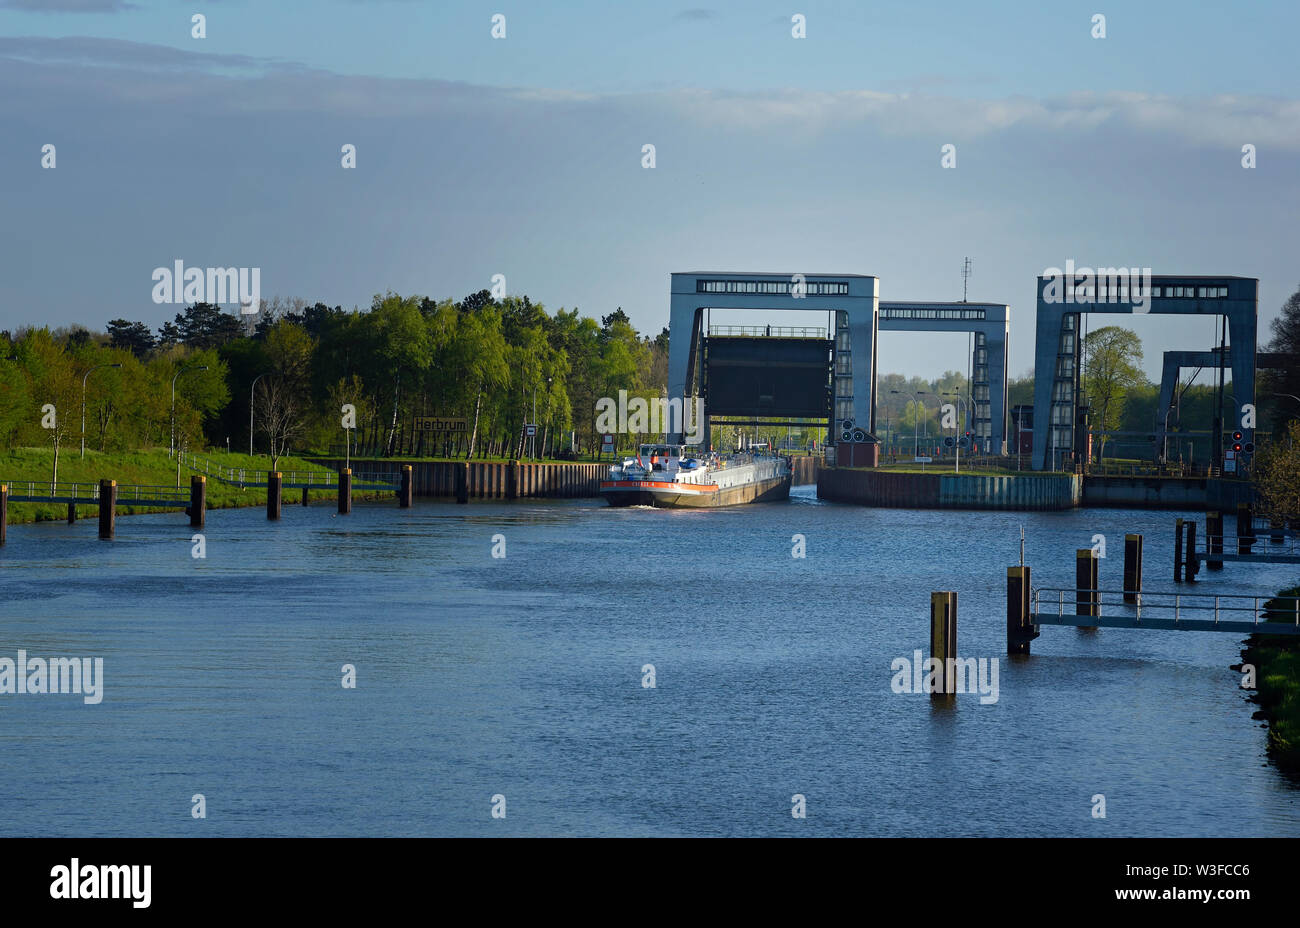 papenburg, niedersachsen/germany - may 04, 2015: the most northerly locks at the end of  dortmund ems canal at km 213.5 near herbrum and a inland wate Stock Photo